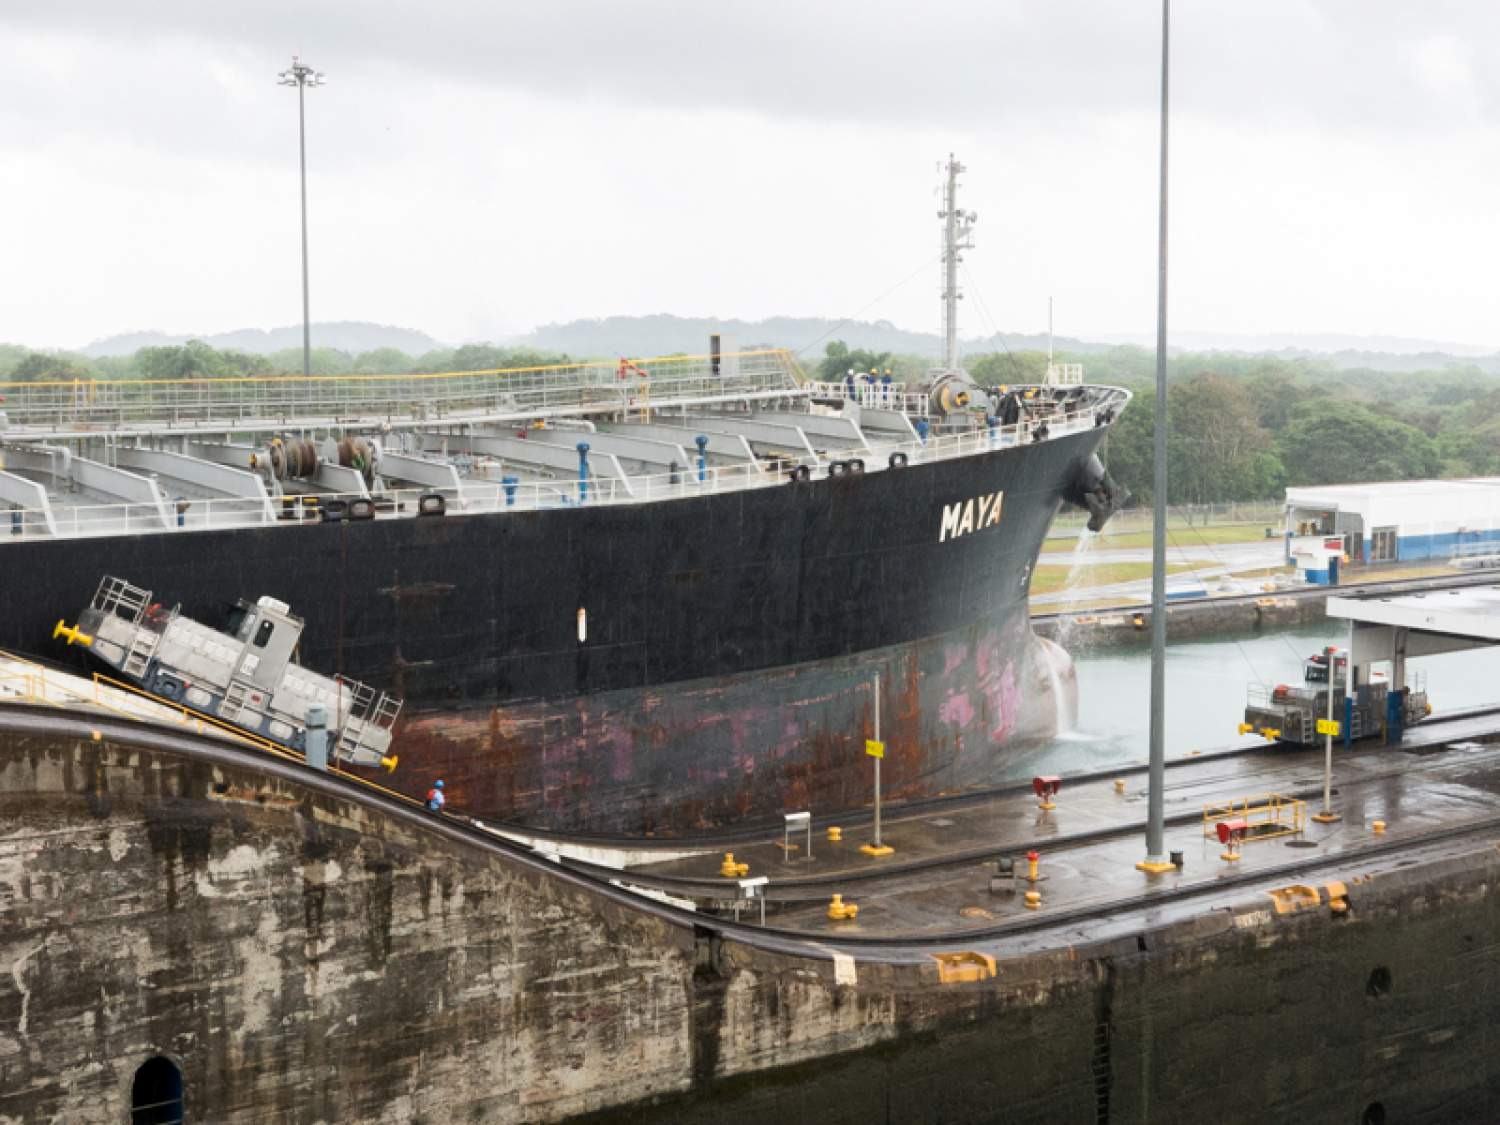 Maya Ship at the Panama Canal